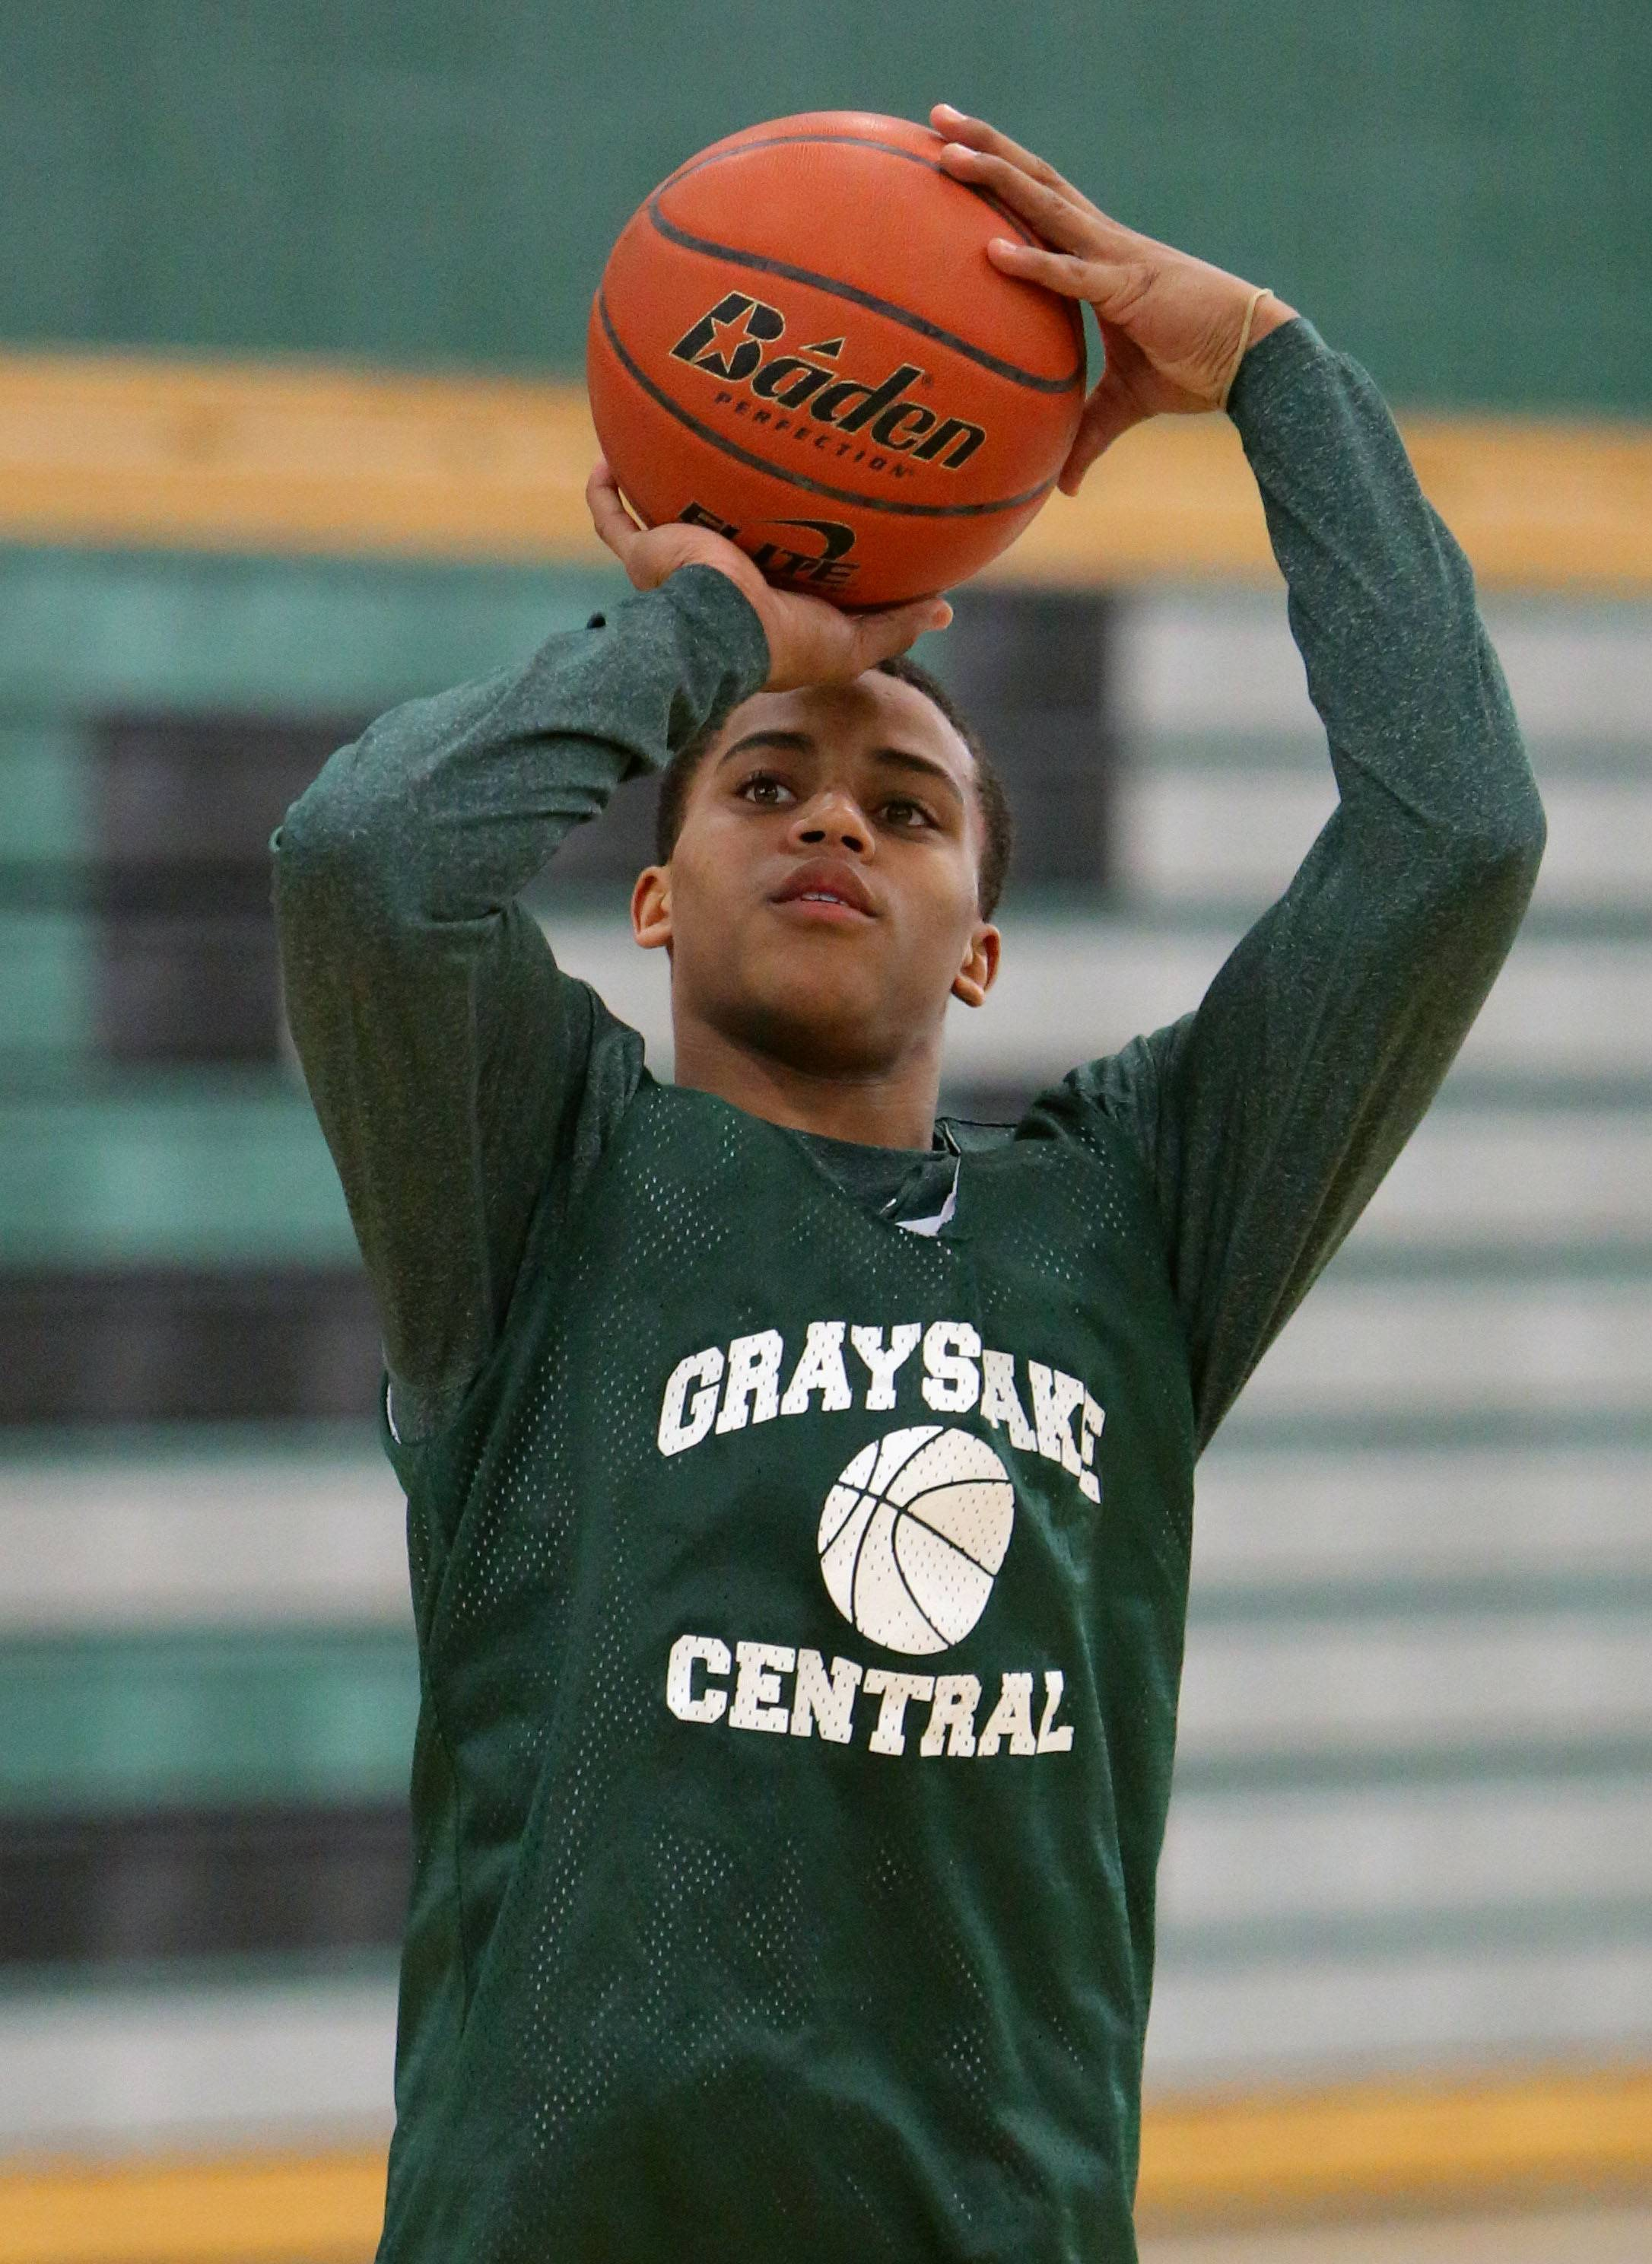 Grayslake Central's Malcolm Reed practices Wednesday.